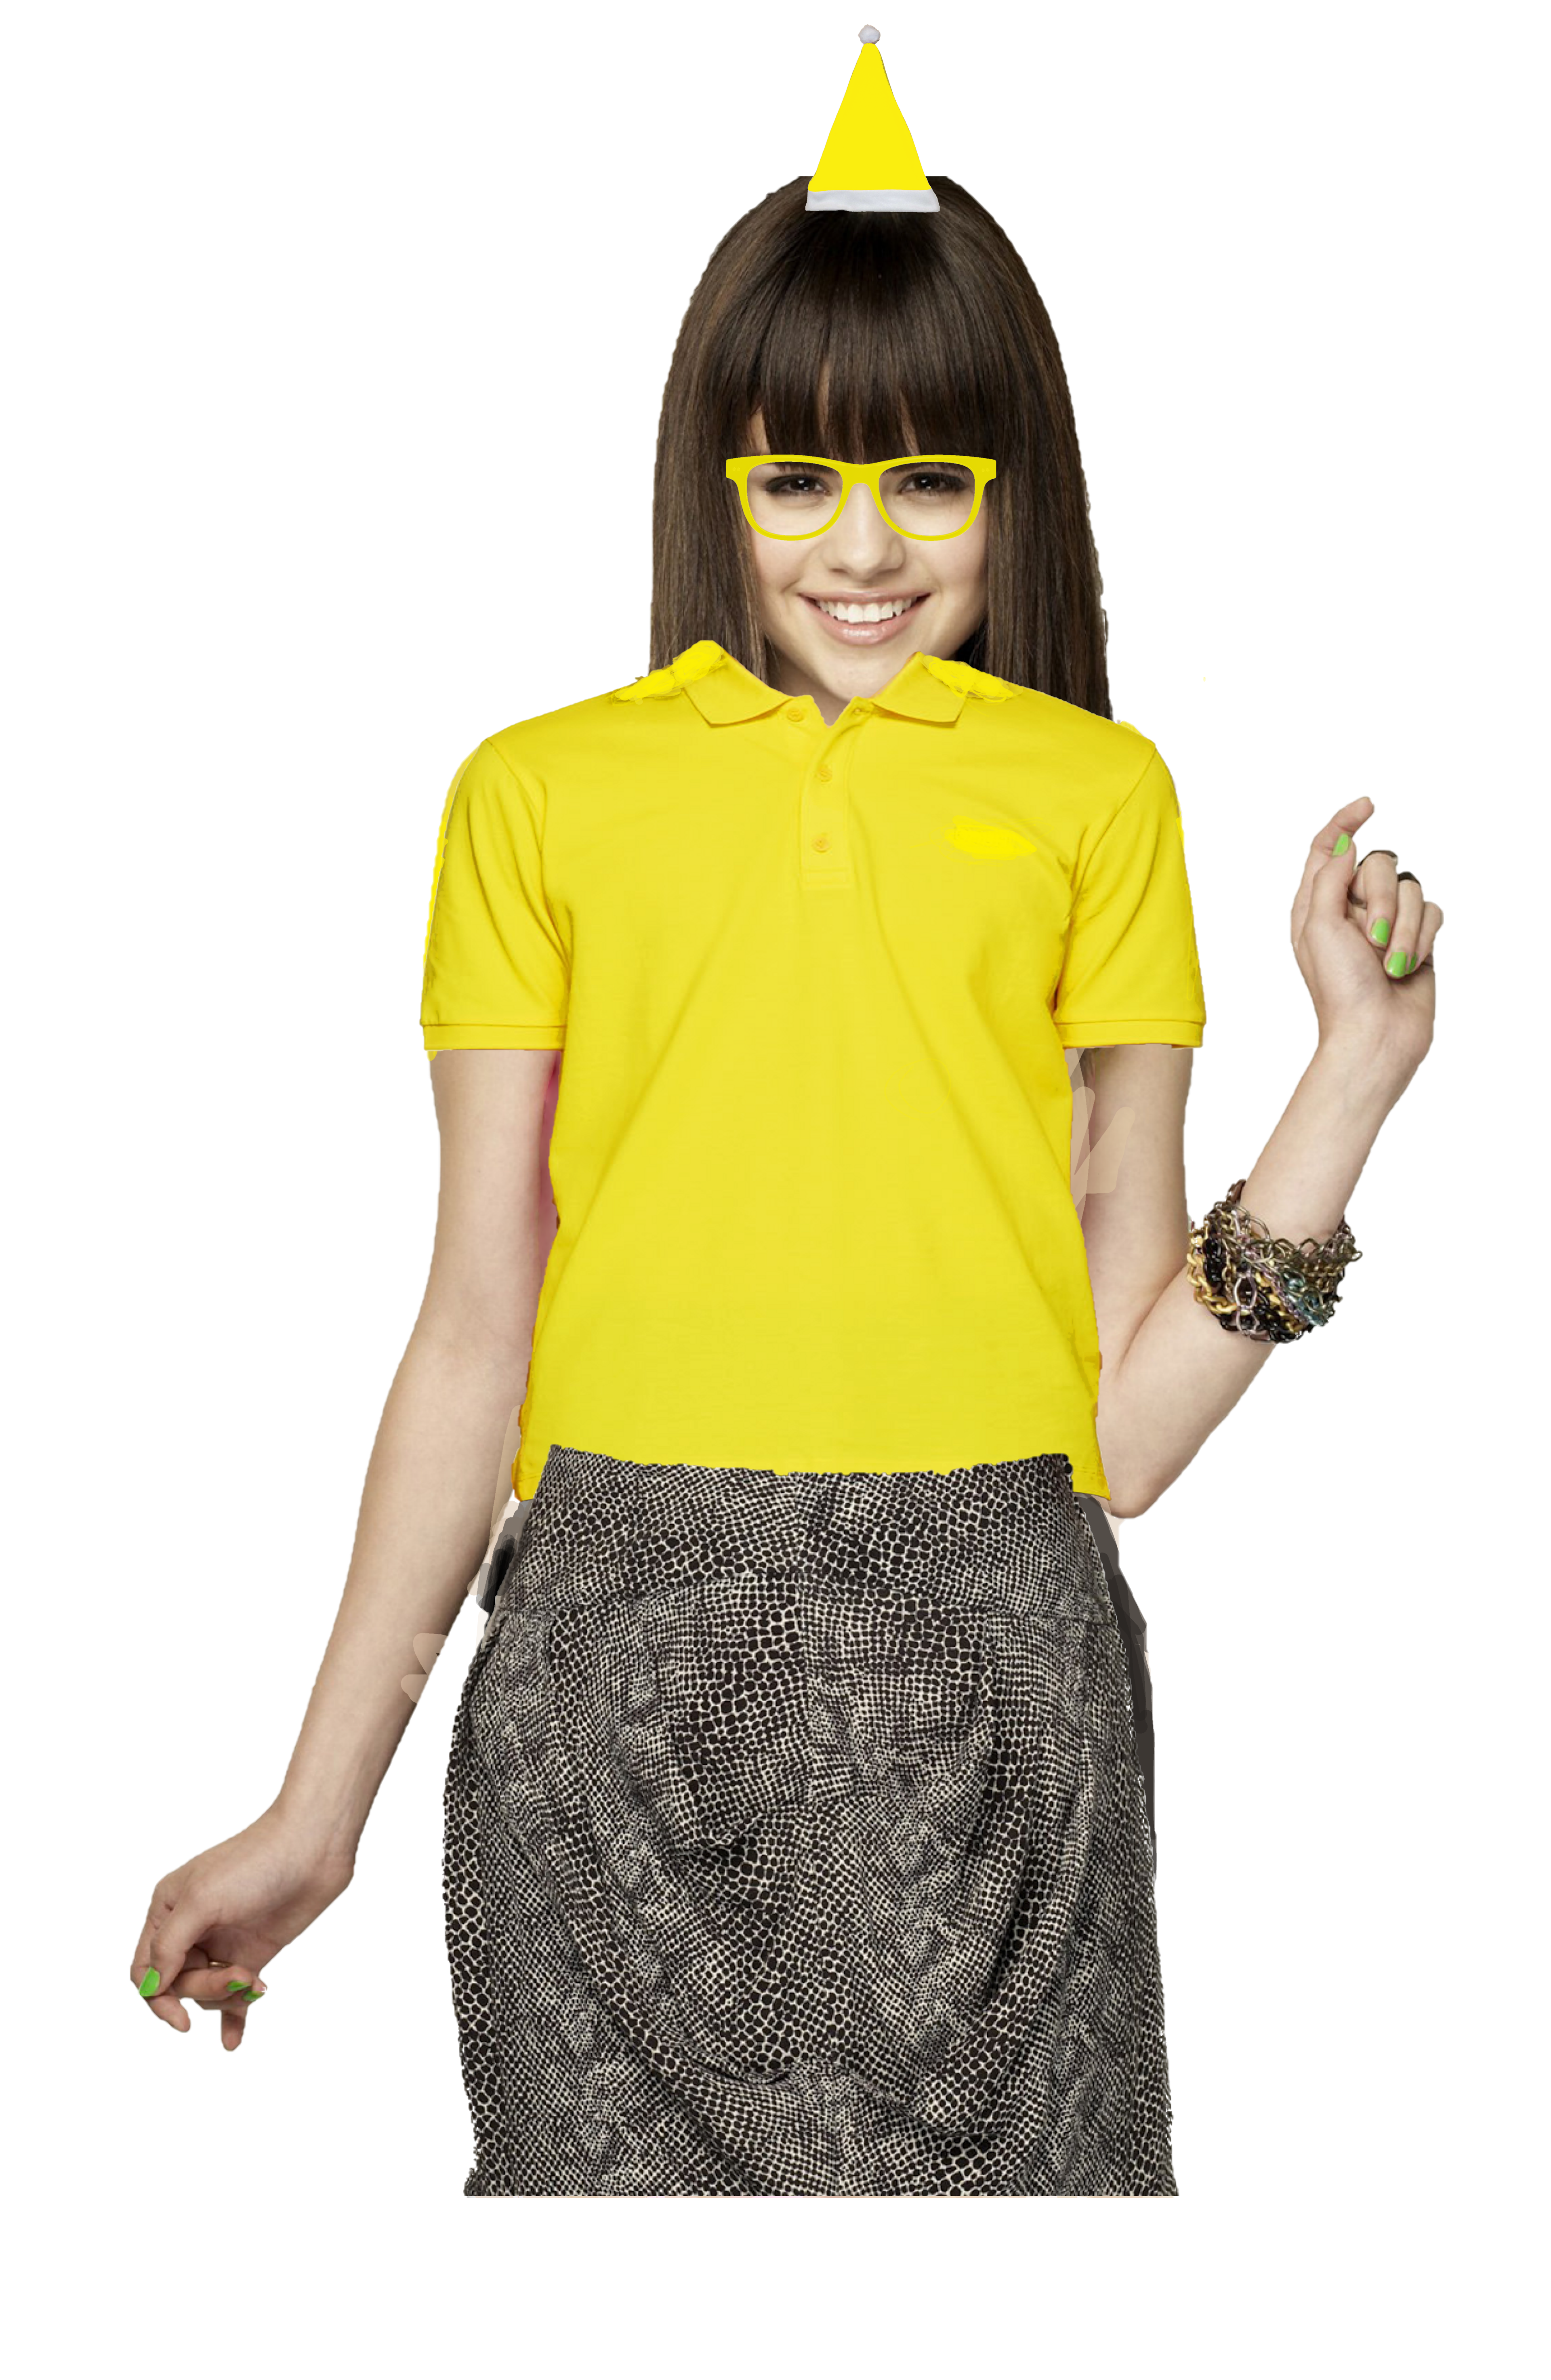 Selena Gomez Long Brown Hair With A Fringe Yellow Santa Claus Hat Glasses Polo Shirt Pitts Pens In 2020 Yellow Polo Shirt Long Brown Hair Santa Claus Hat